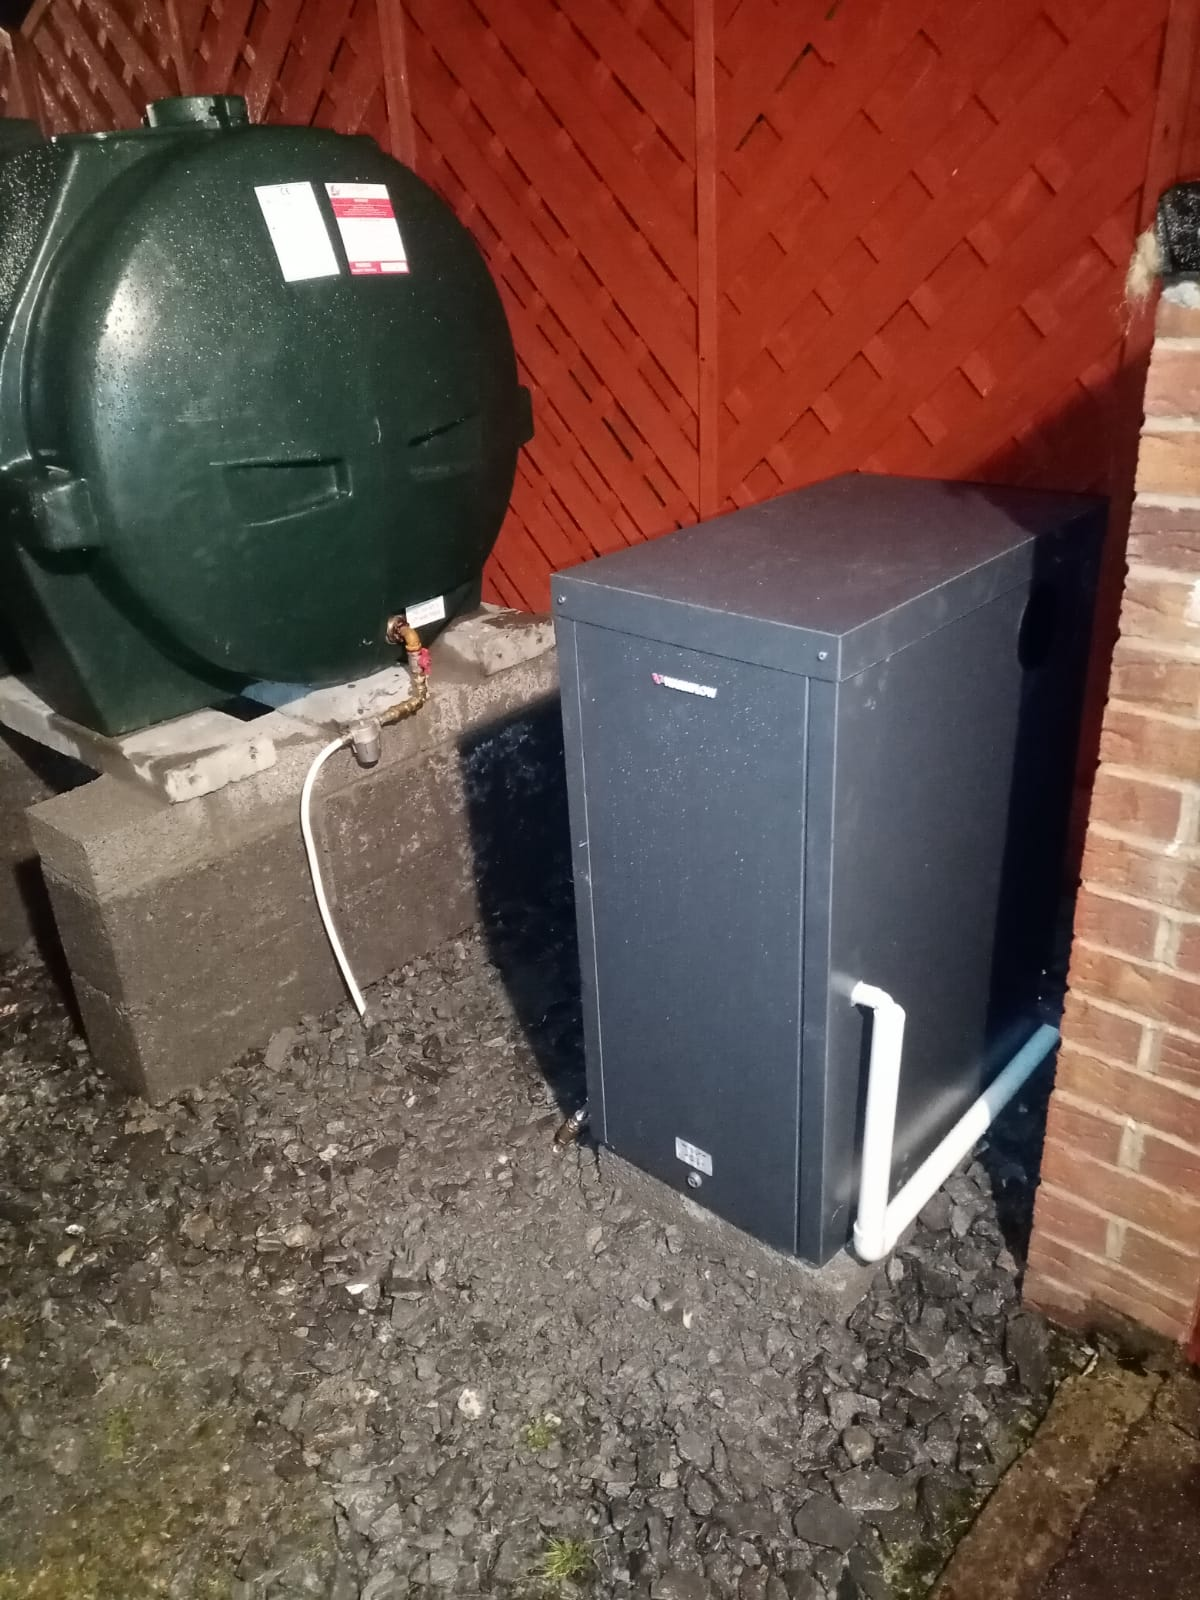 Outdoor Warmflow New Oil Boiler Replacement - After Photo